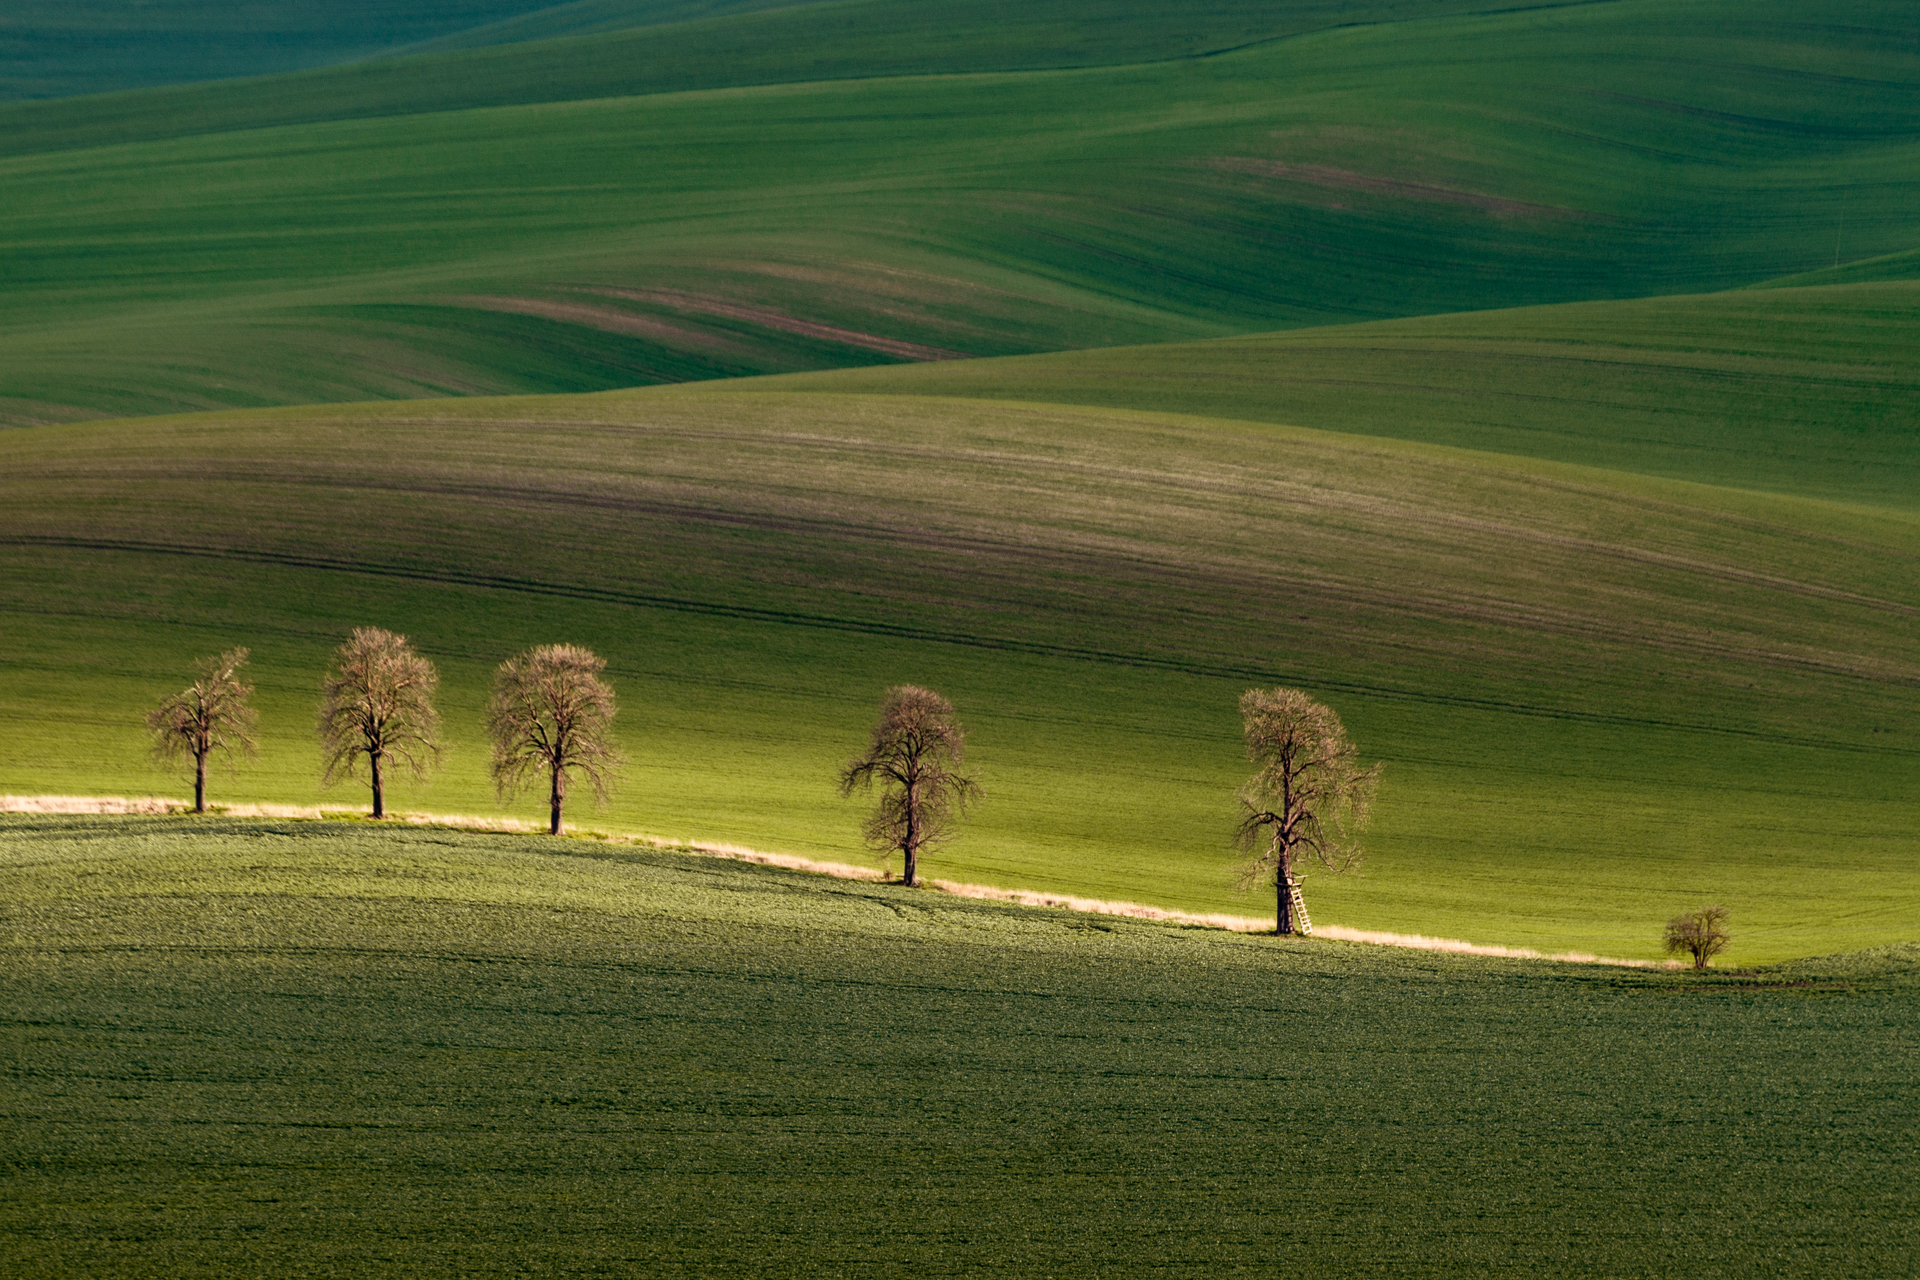 Chestnuts Avenue, Moravia, Czech Republic